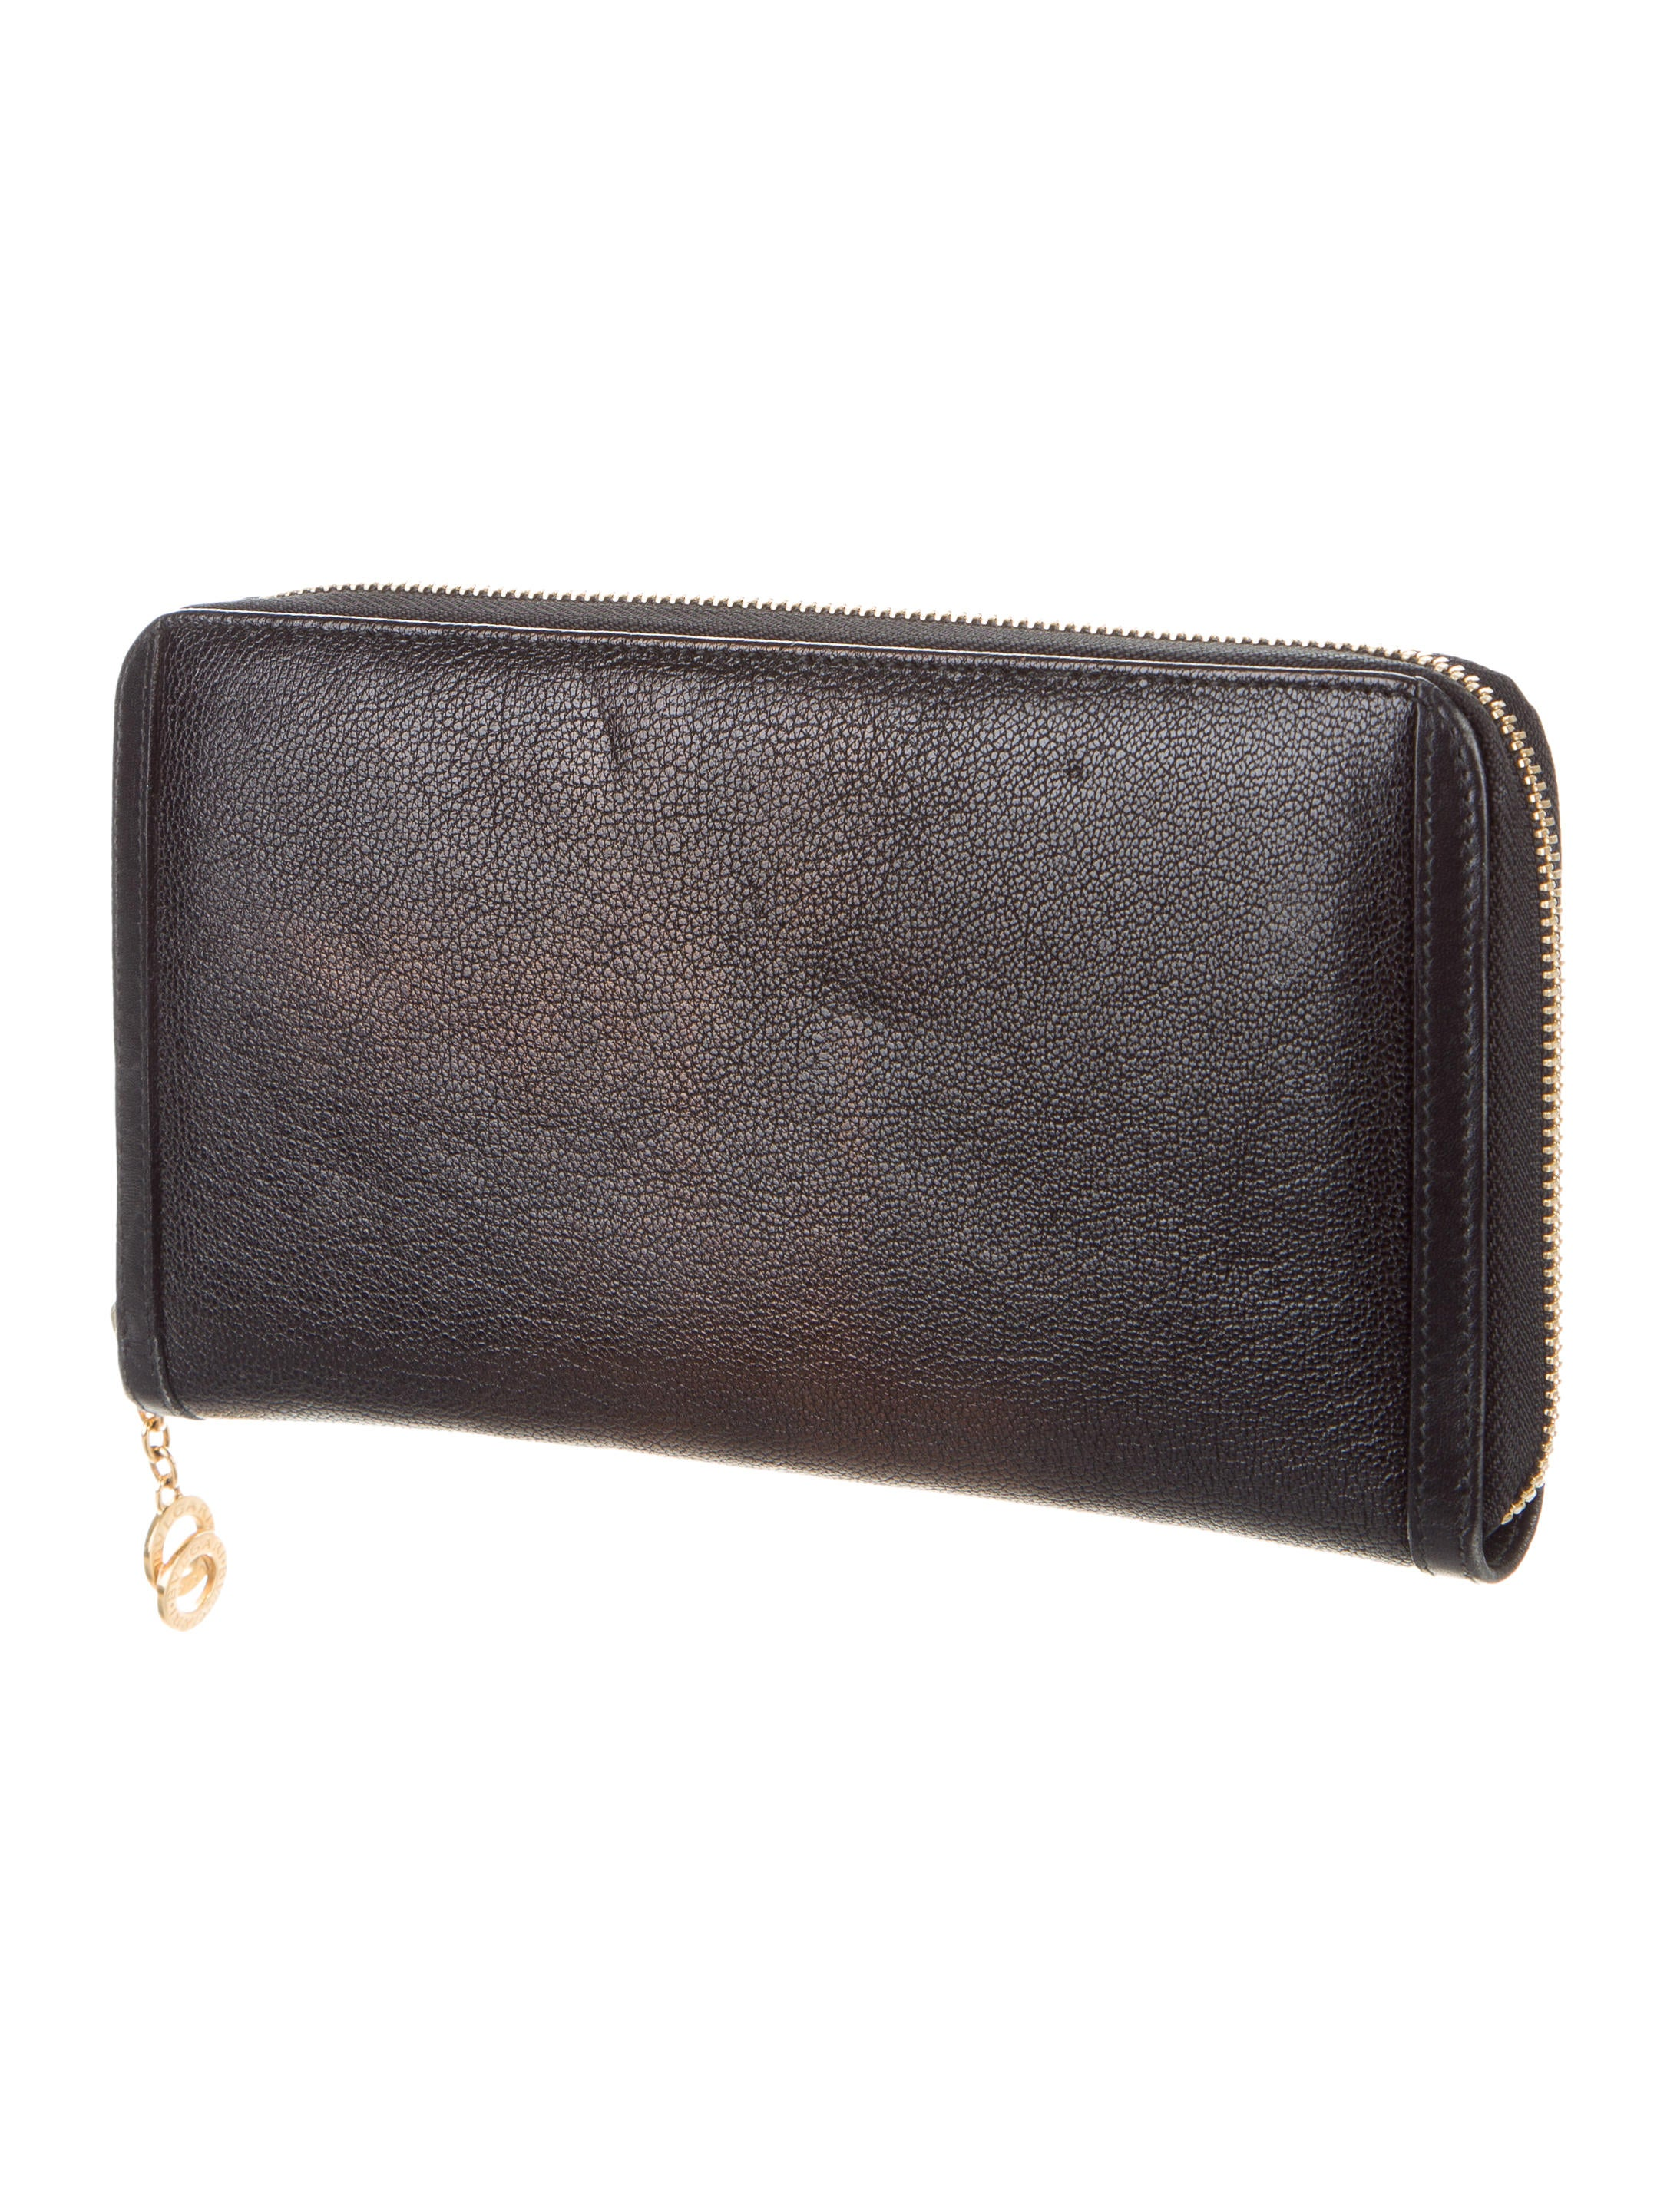 Bvlgari Leather Travel Wallet Accessories Bul26321